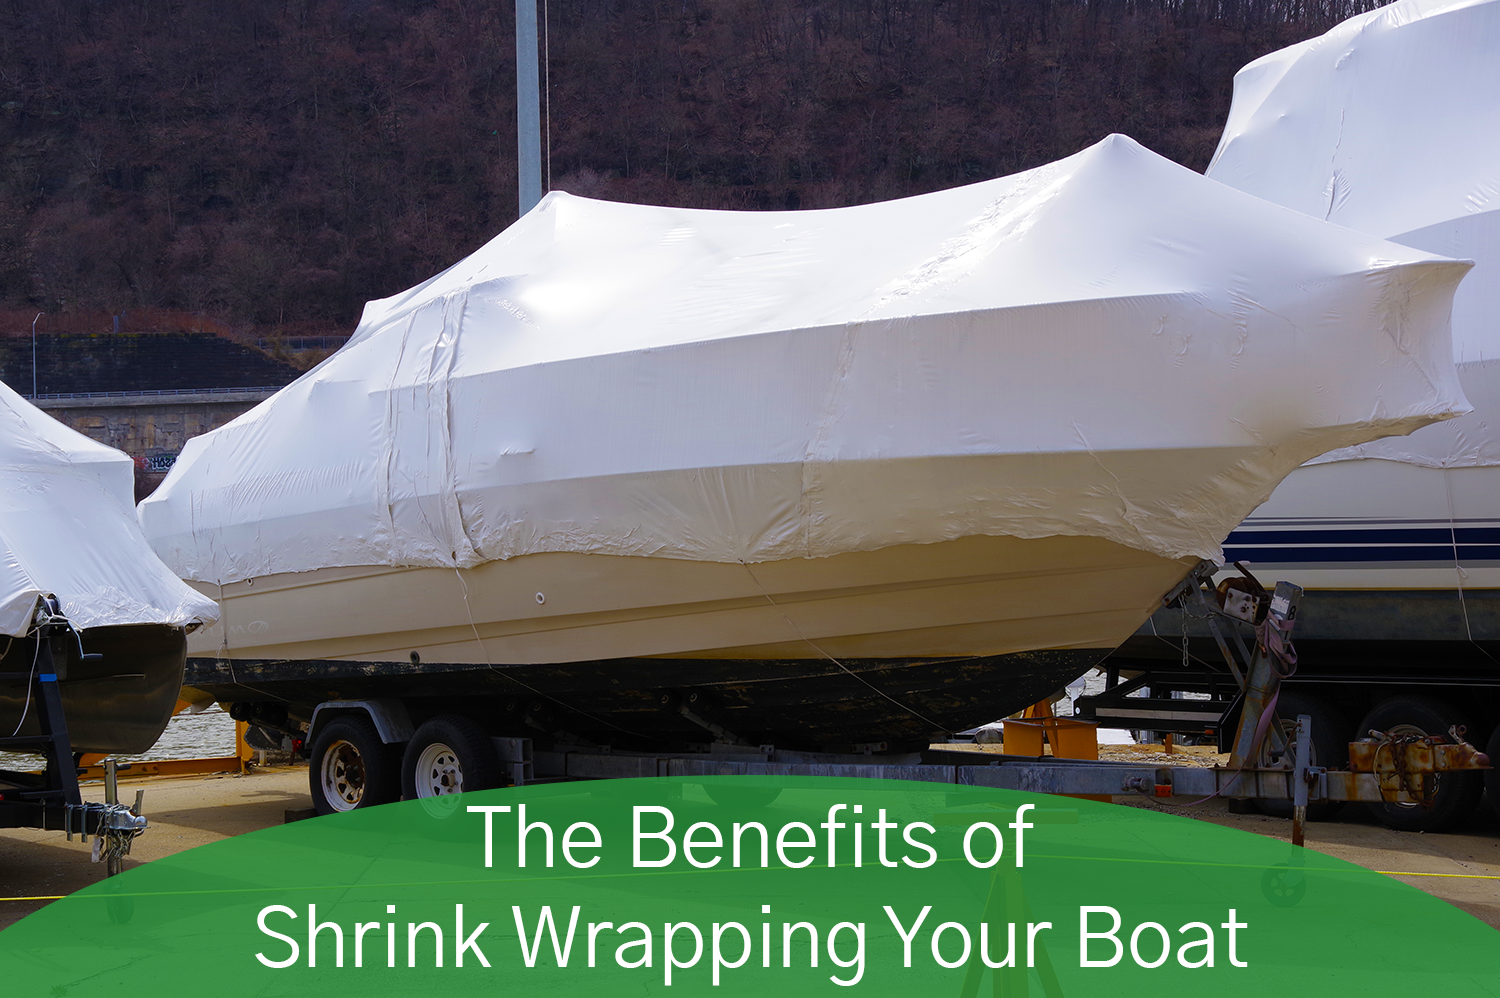 A boat with white shrink wrapping cover it from the elements.